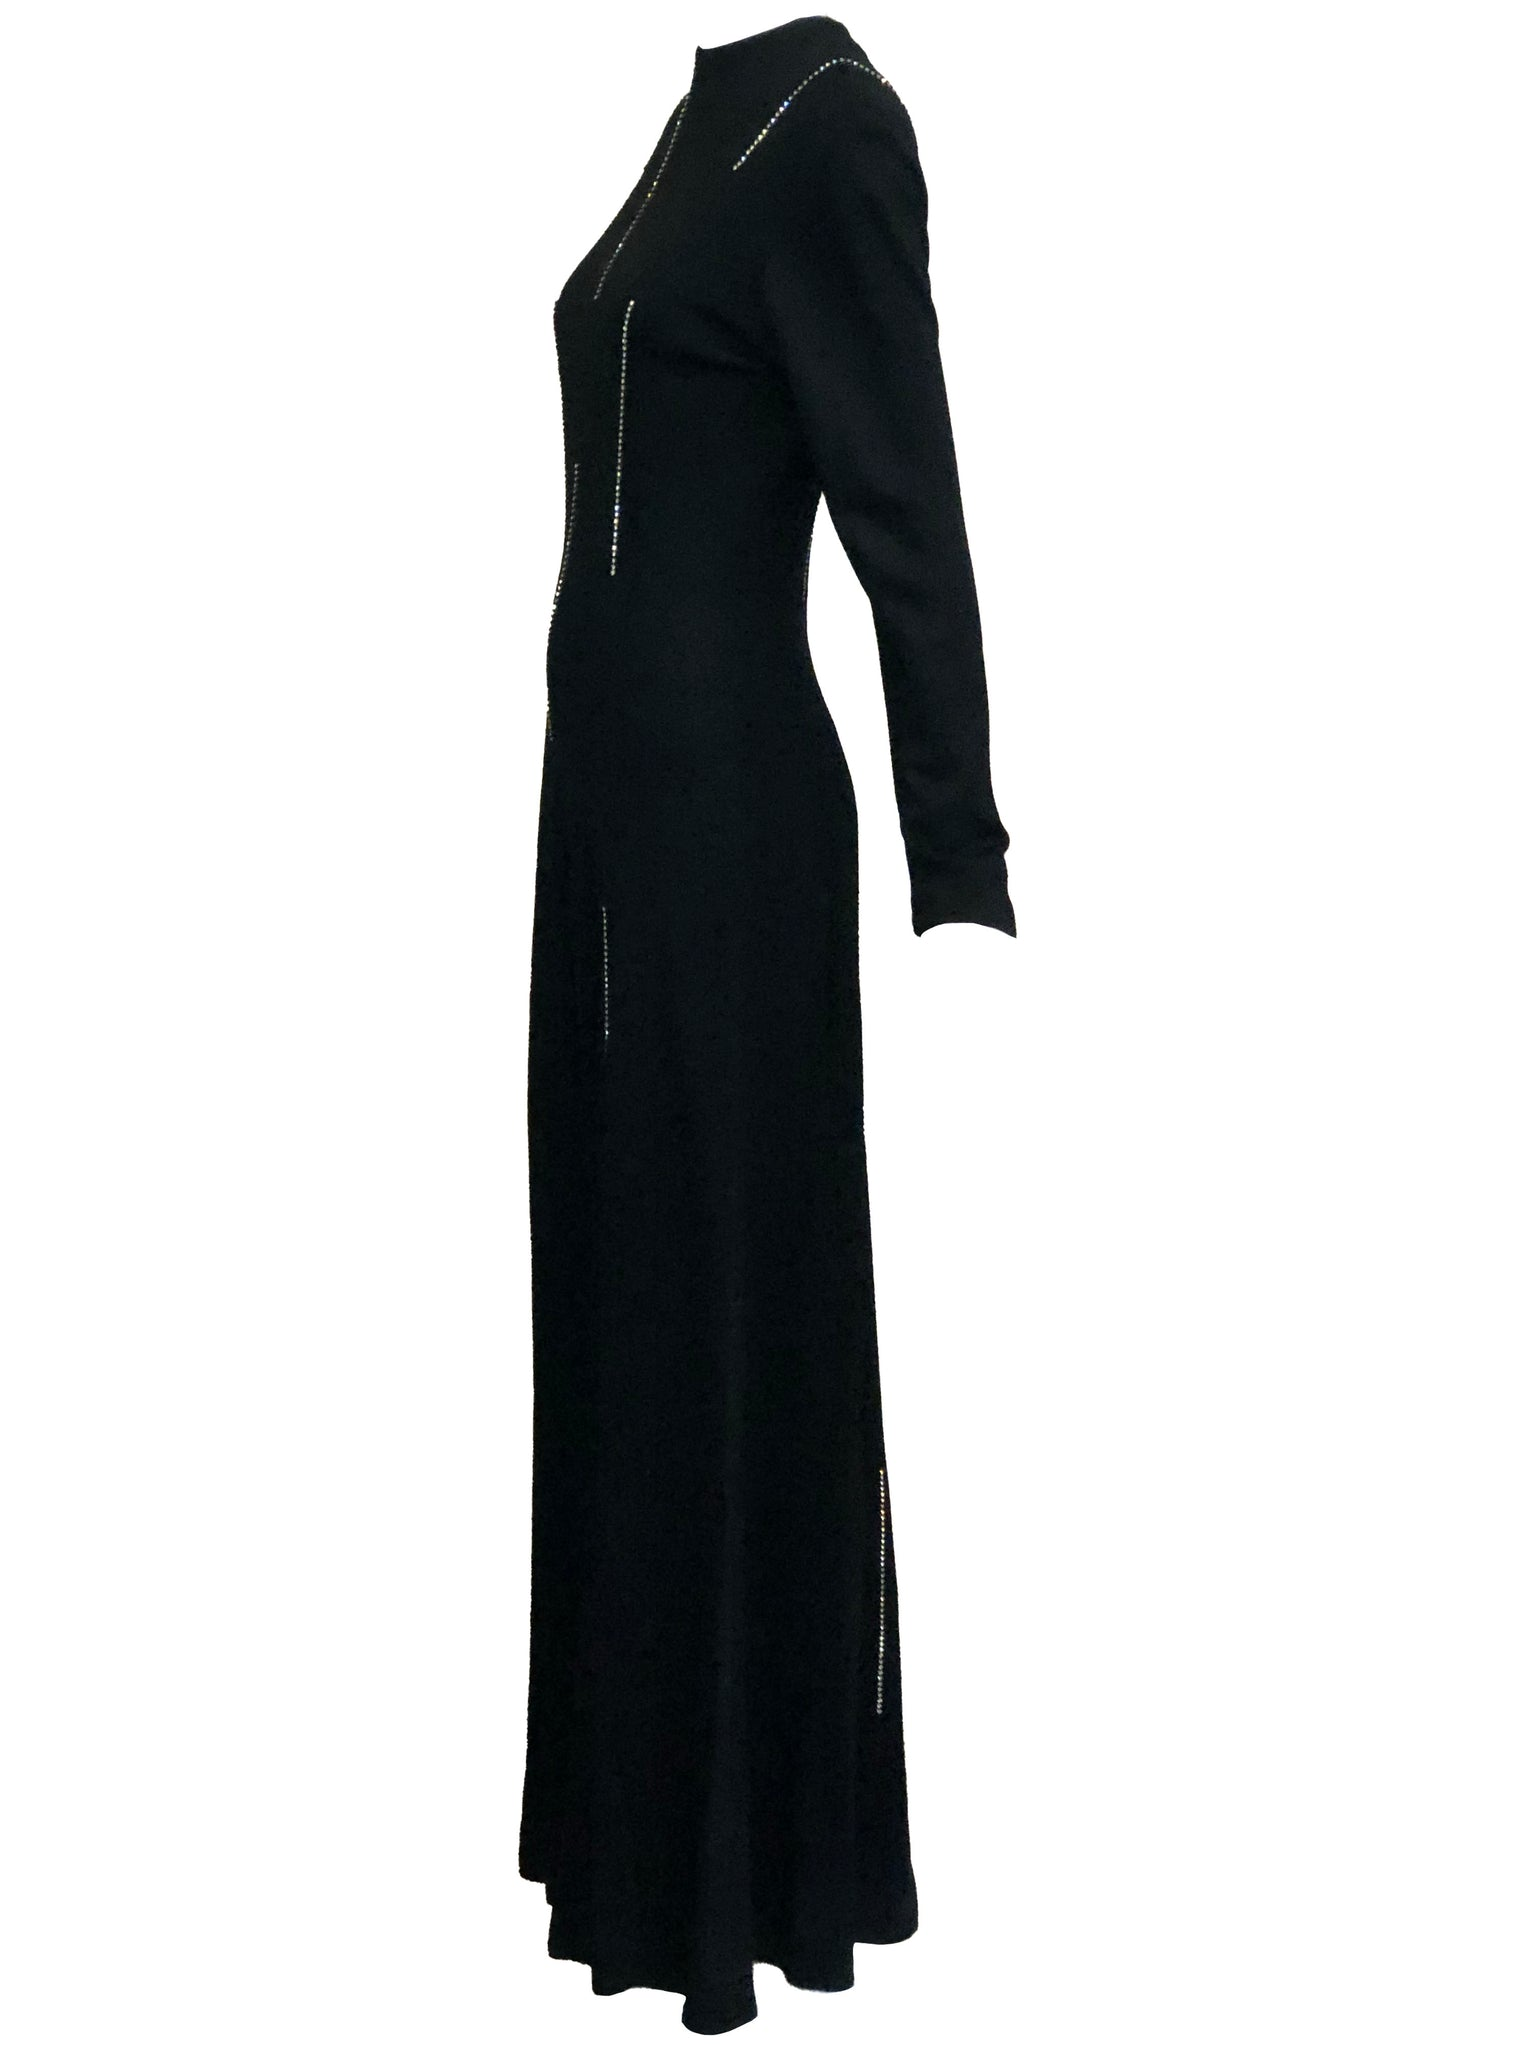 70s Black Polyester Rhinestone Jumpsuit SIDE 2 of 5